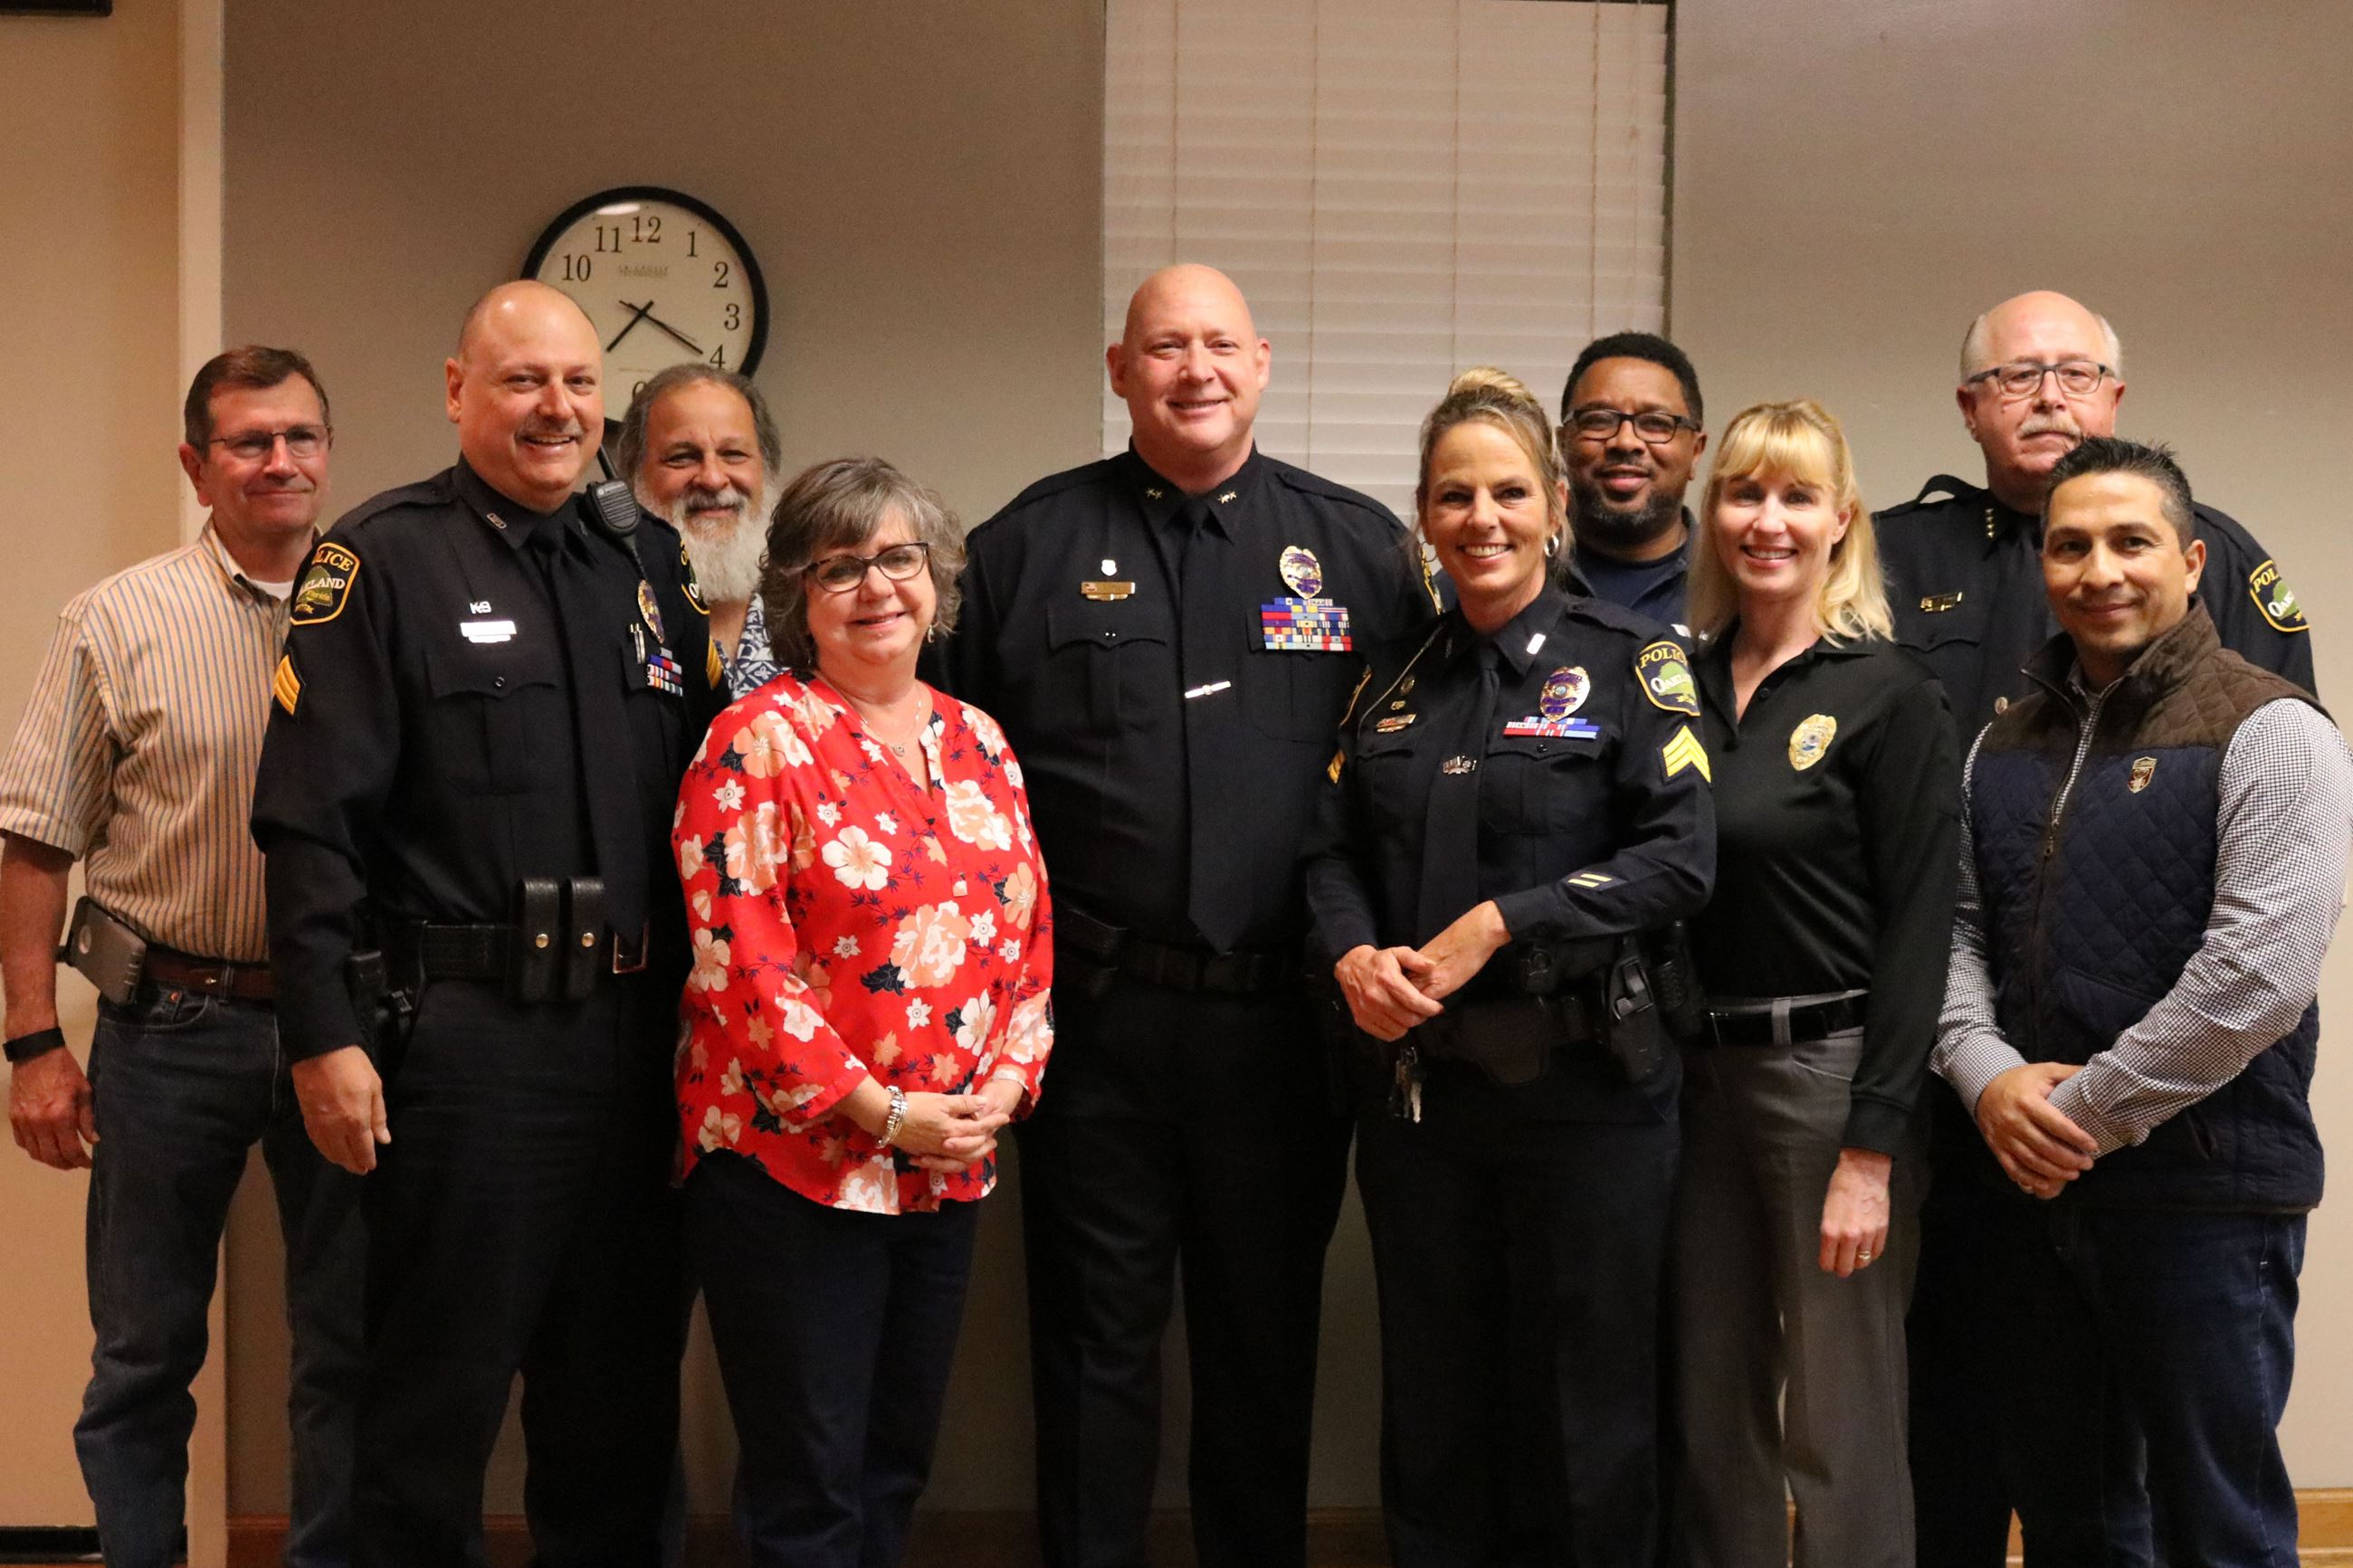 During a Town Commission Meeting, on January 9, 2018, Chief Thomas announced the promotion of four members of the Oakland Police Department.   Mayor Stark was joined by the rest of the Town Commission in applauding the following progressions: